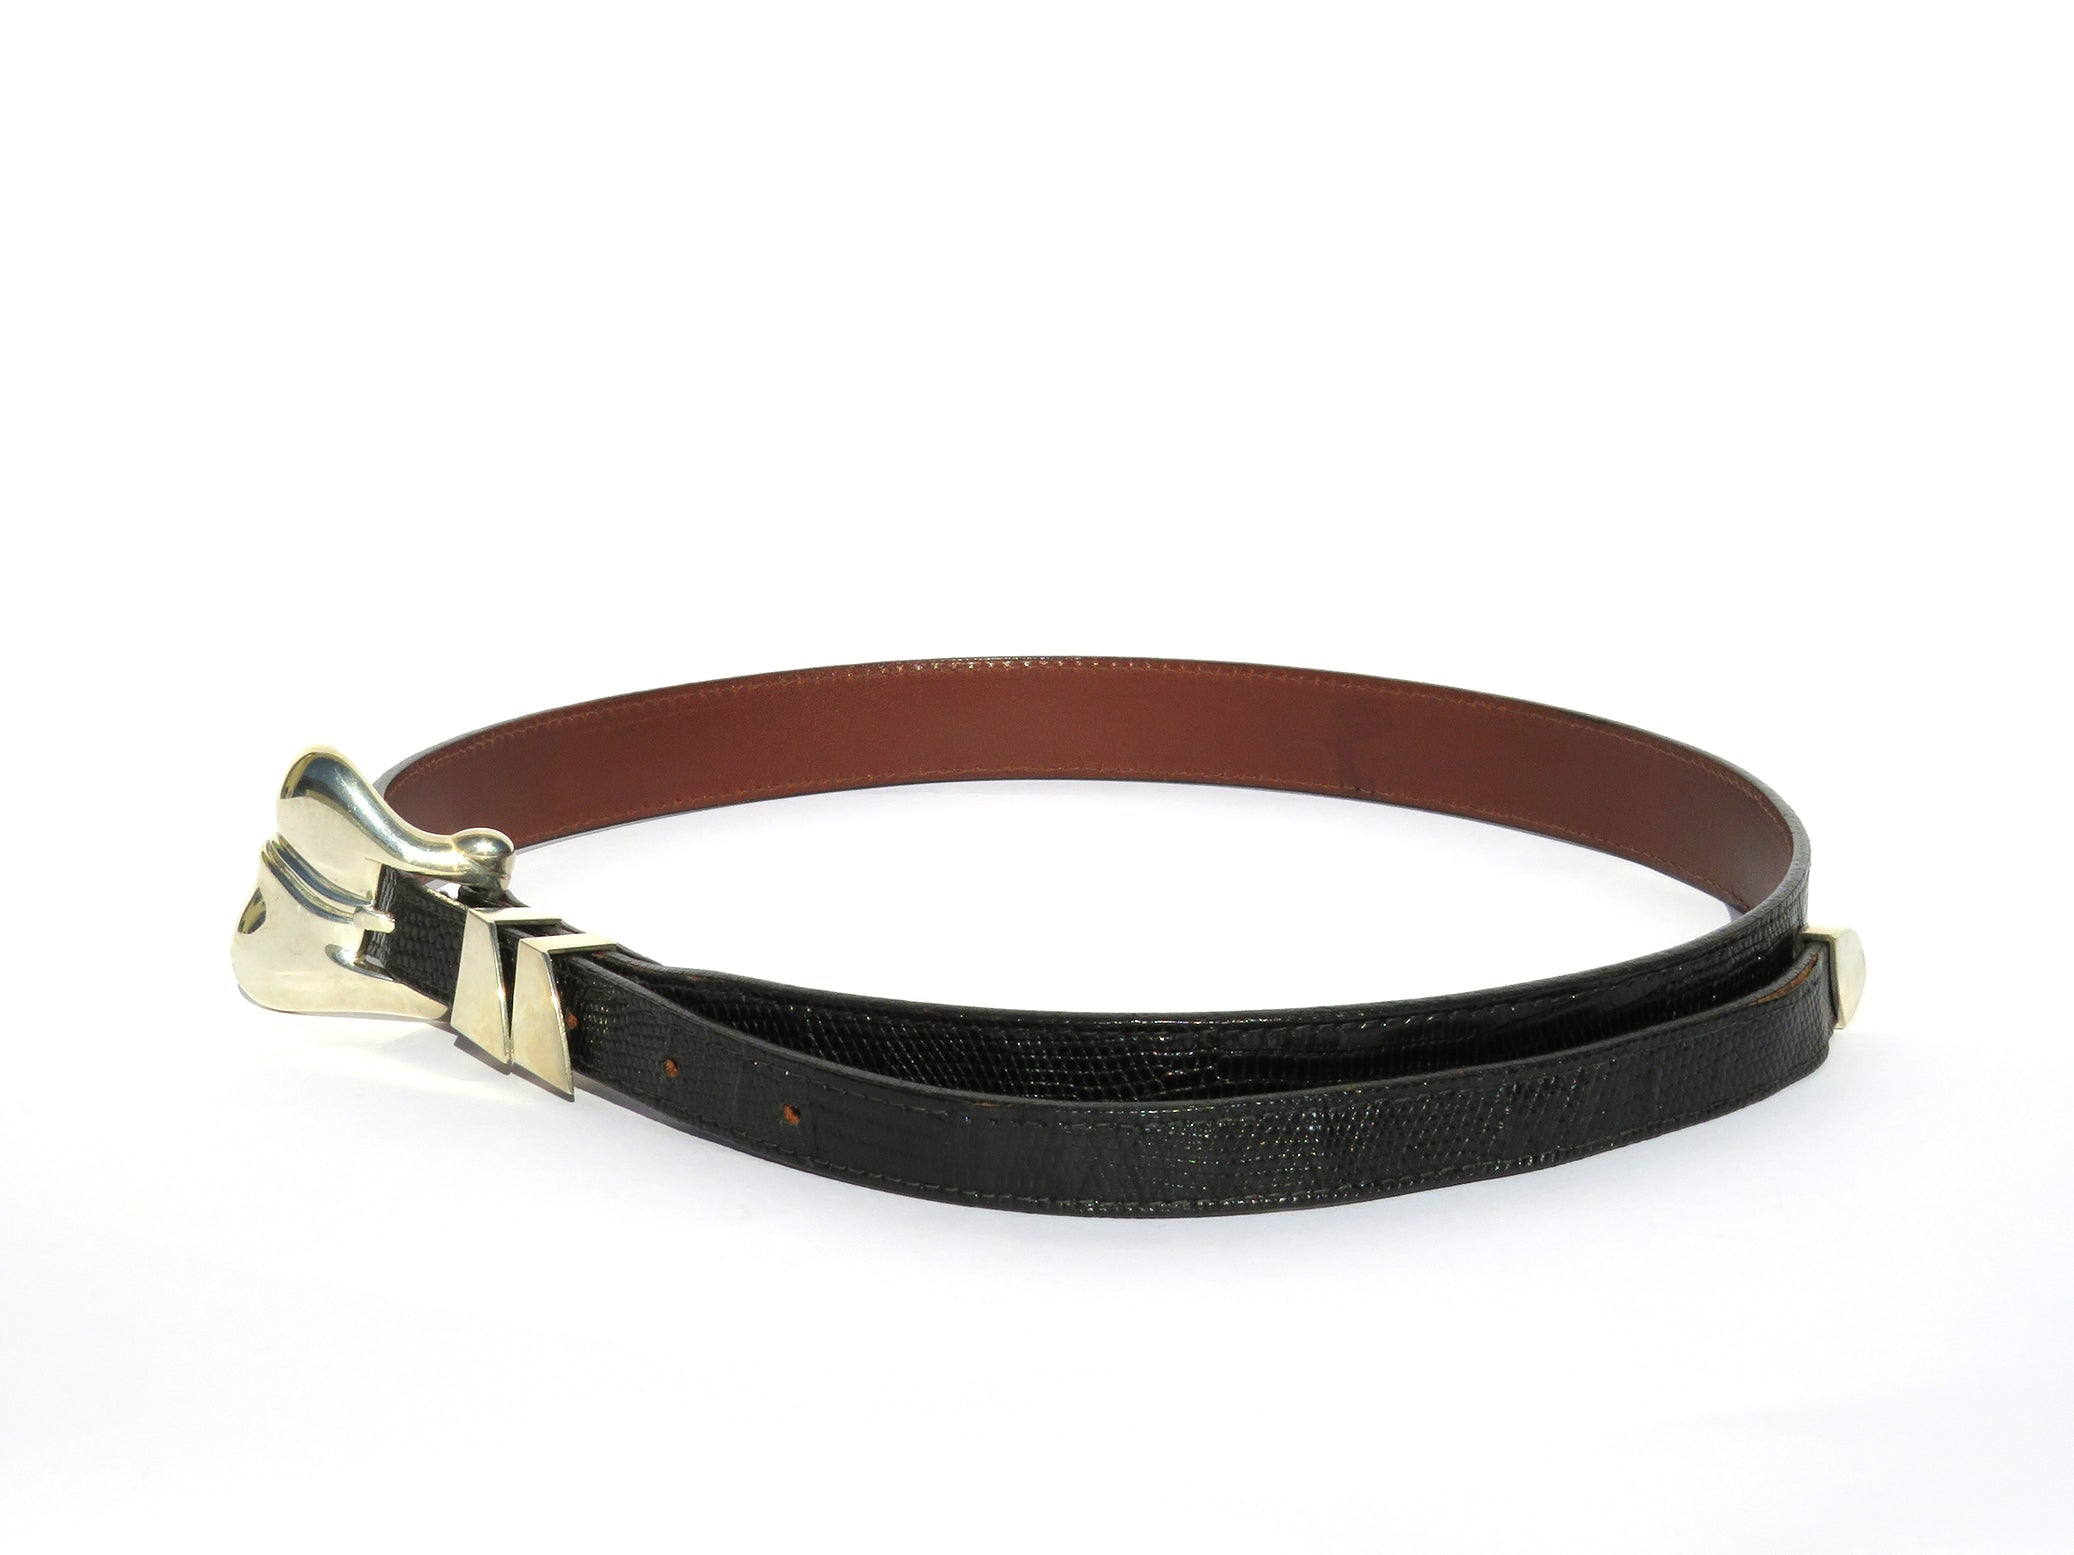 KIESELSTEIN CORD Vintage Black Lizard Leather Sterling Silver Buckle Belt 28-32""